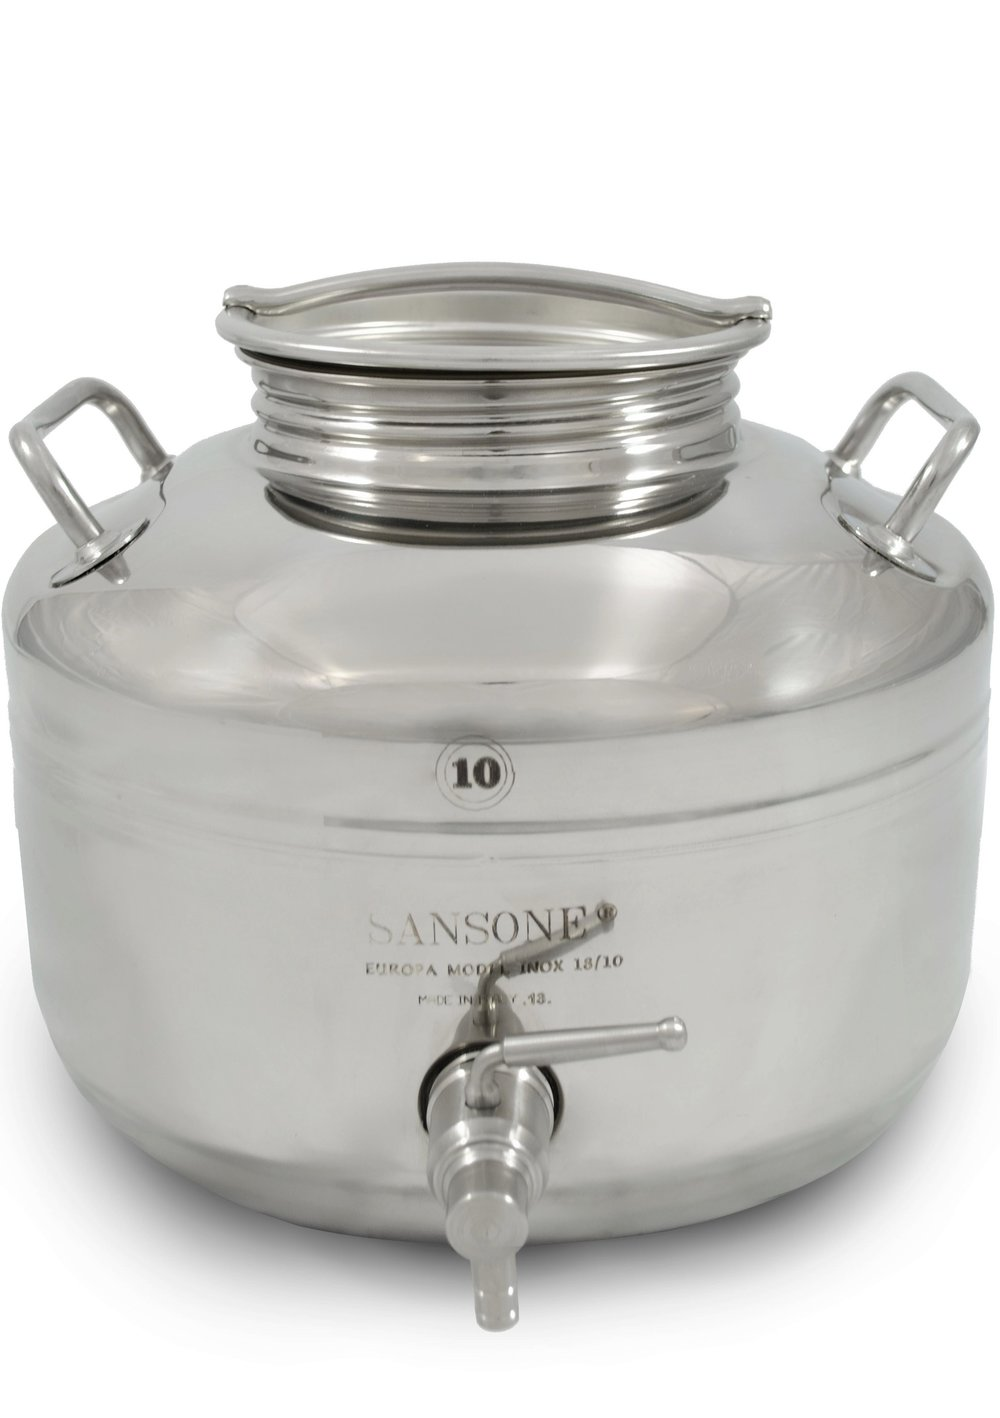 10 Leiter Fusti - FOR THE OLIVE OIL OR VINEGAR LOVER FANTIC. THIS  10 LITER FUSTI WILL KEEP YOU STOCKED YEAR ROUND.